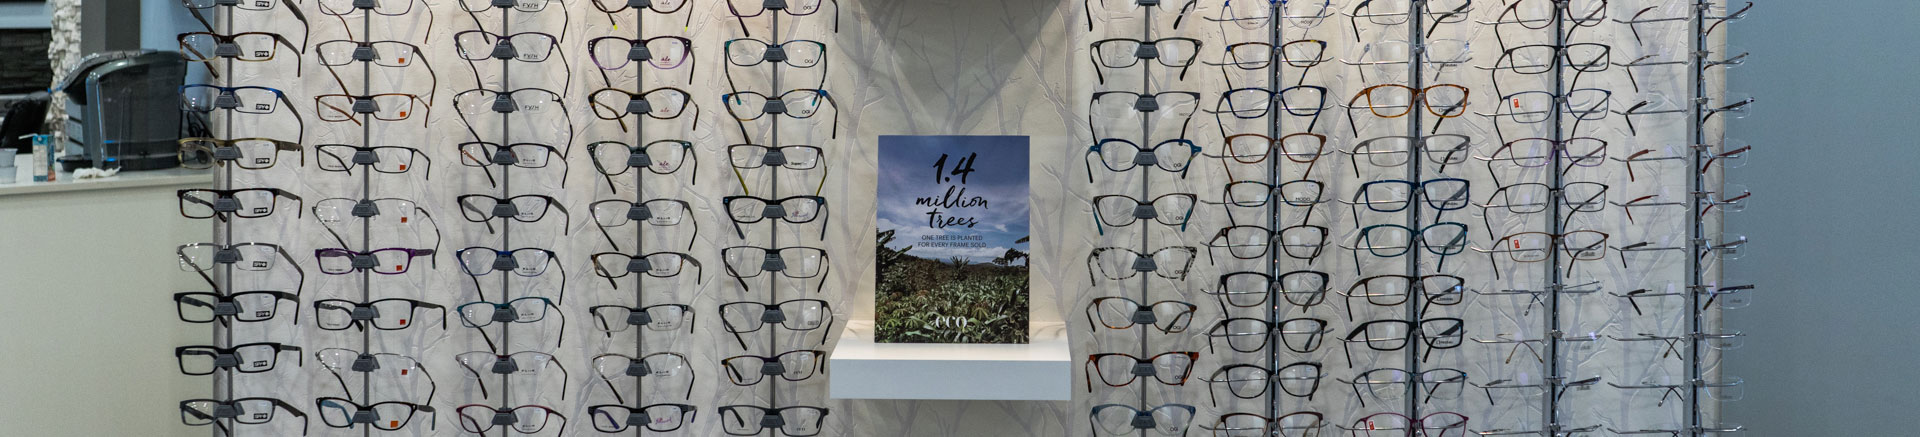 Eyecare - Glasses on Wall